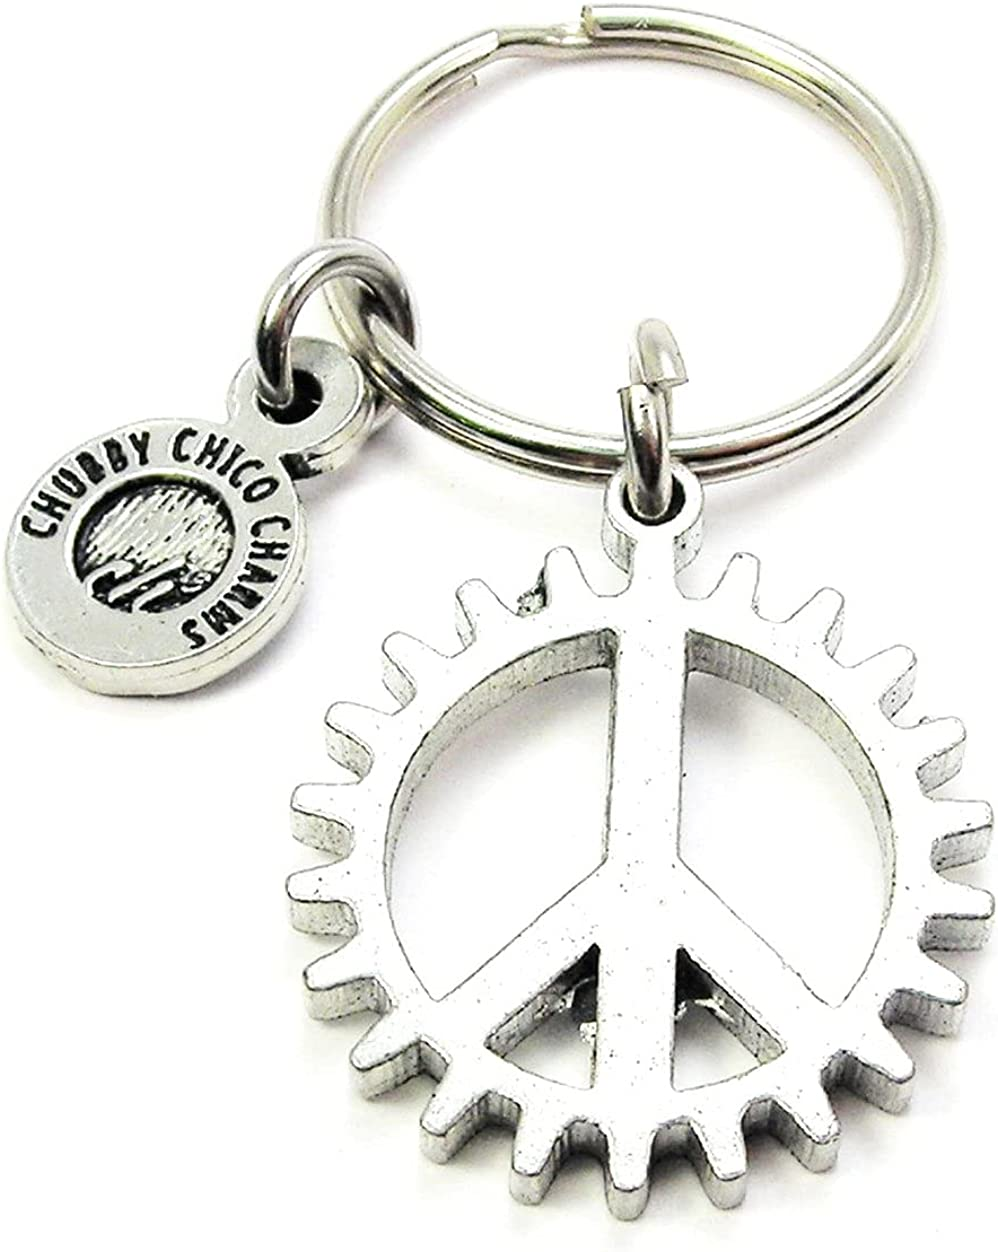 ChubbyChicoCharms Peace Sign in Gear Pewter Charm On Stainless Steel Keyring Key Ring Key Chain Keychain for Women, Men, Teens, Positivity Gift, Present for Inspiration